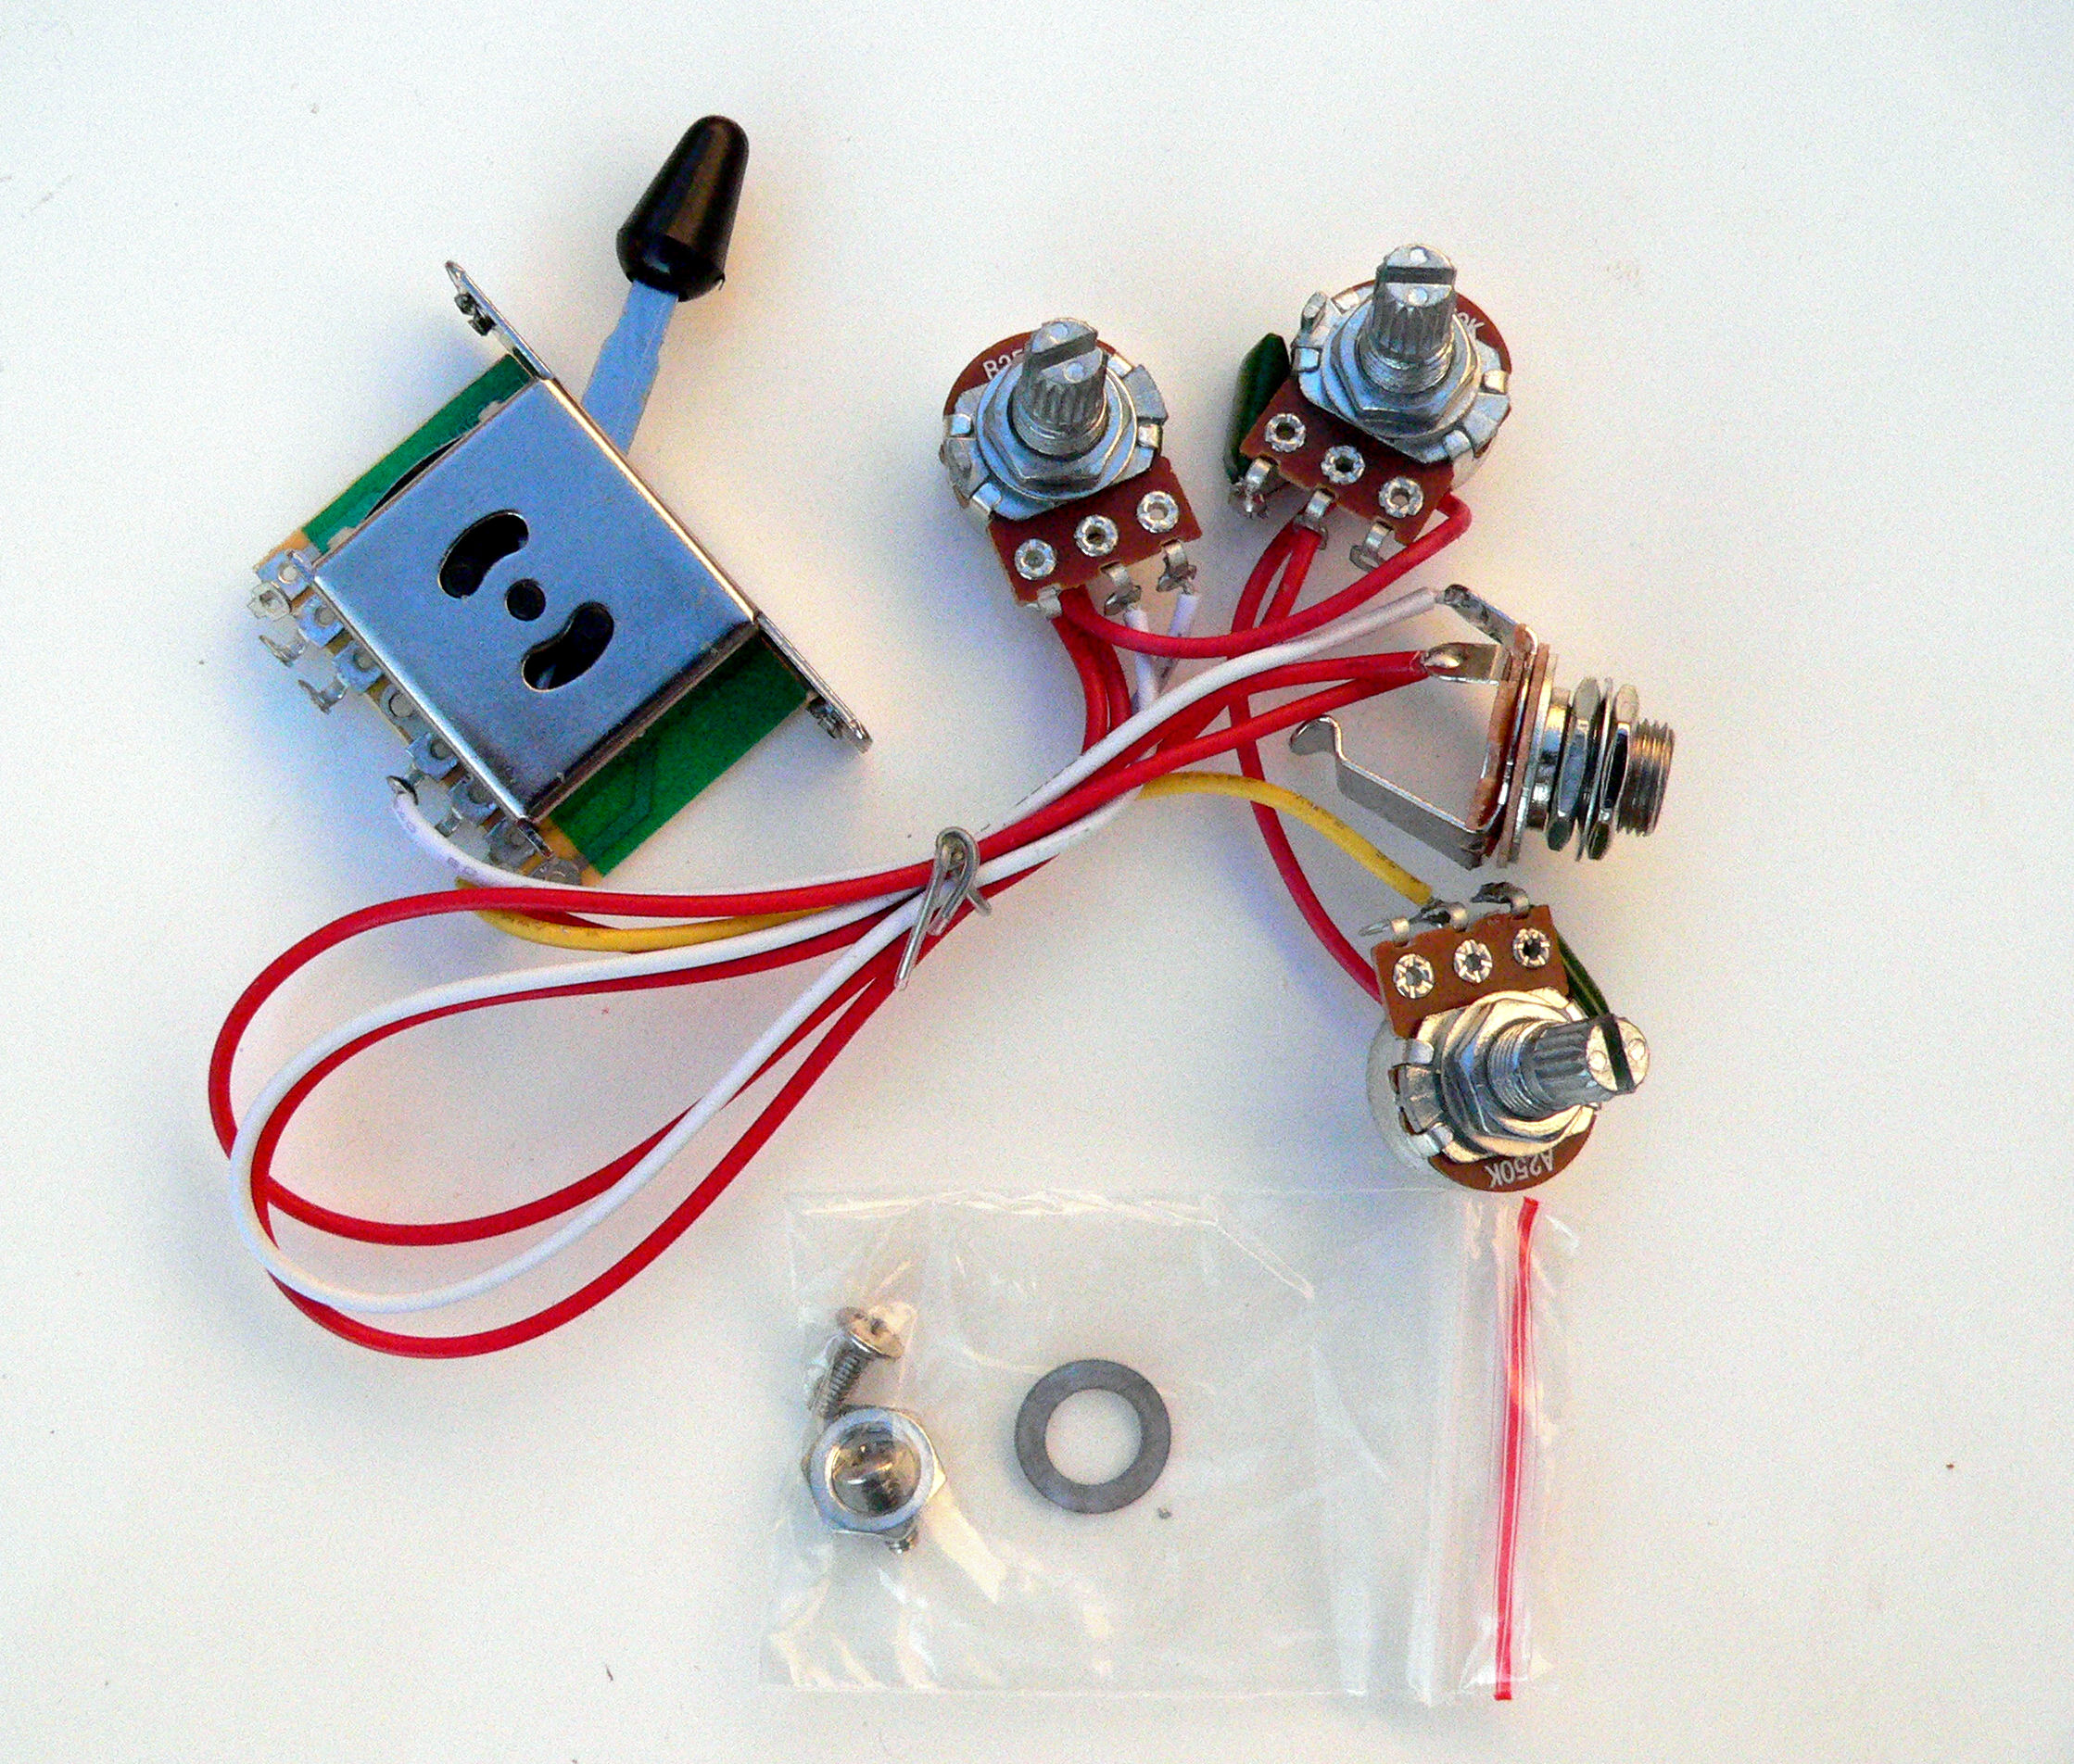 Details about 250K 5 way Wiring Harness for Fender Stratocaster guitar on